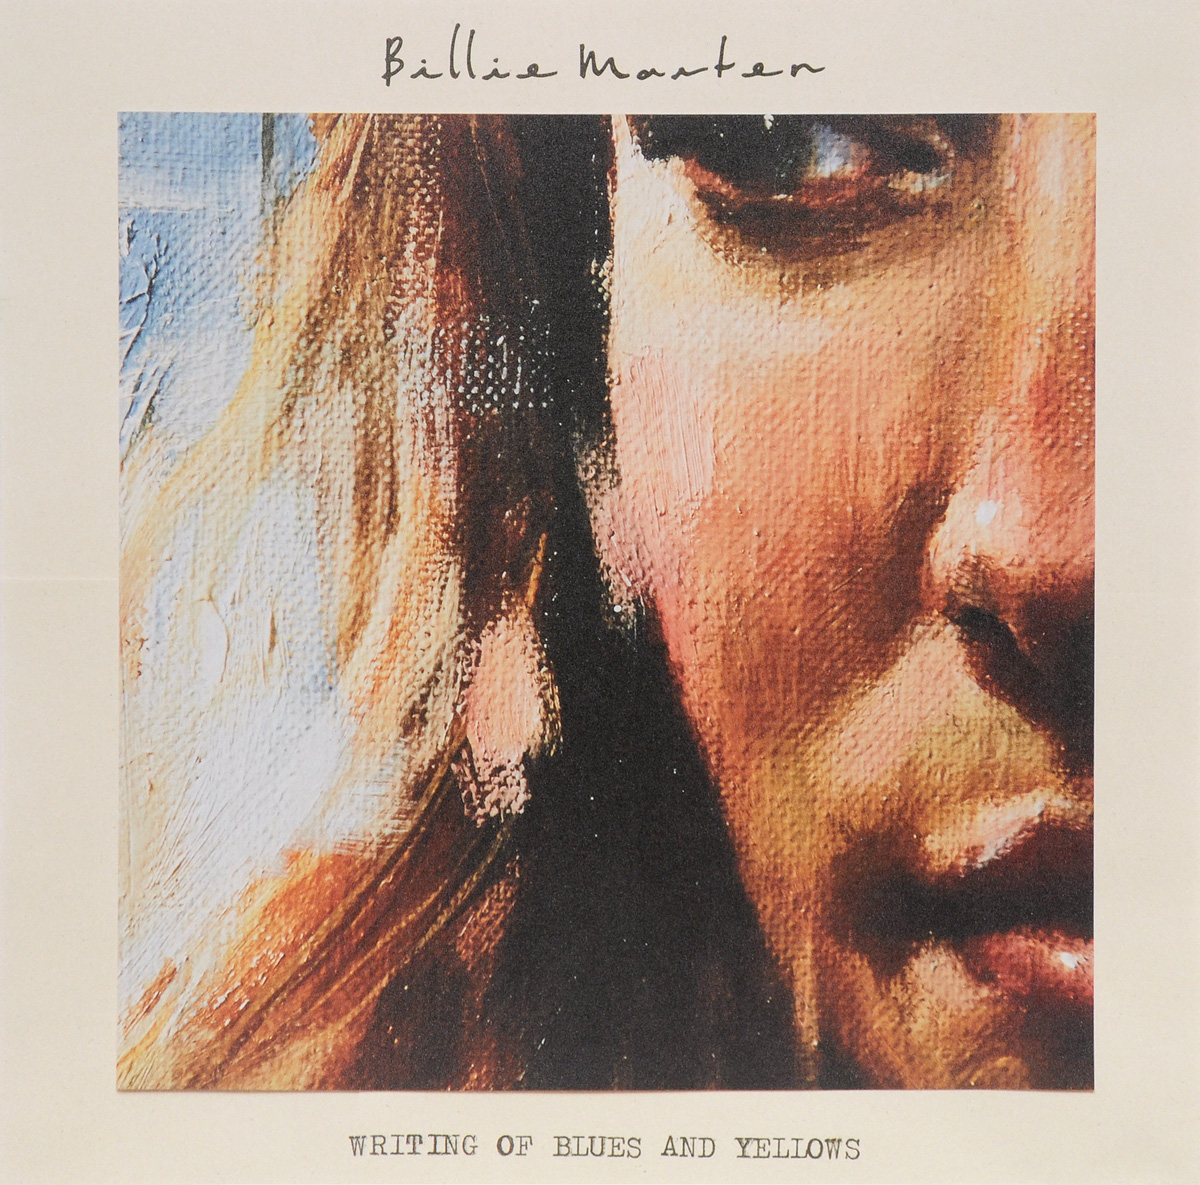 Billie Marten Billie Marten. Writing Of Blues And Yellows (2 LP) roxy music roxy music the studio albums limited edition 8 lp